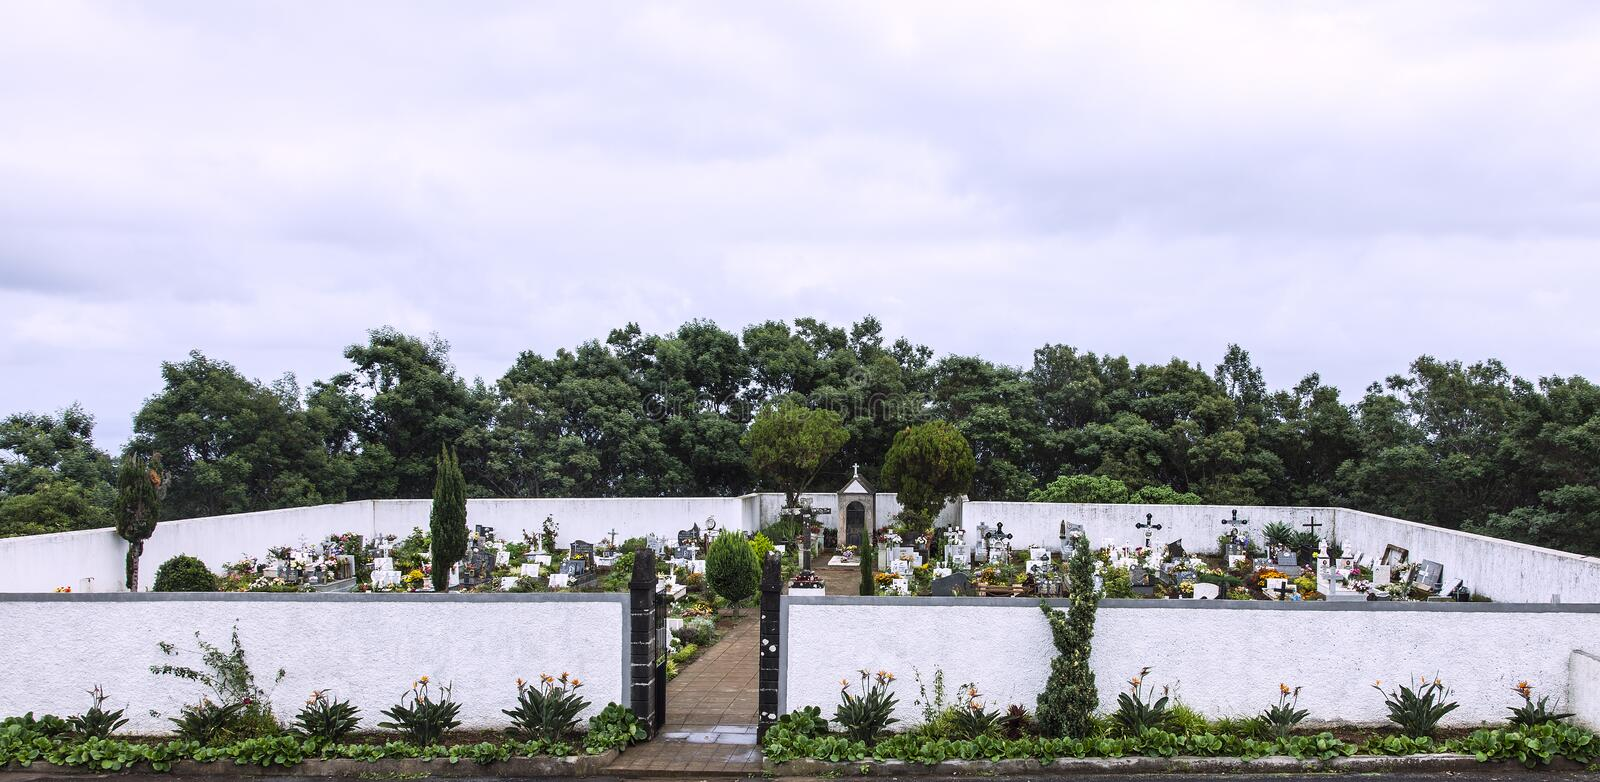 Cemetery on the island of Madeira. a place of peace, quiet, reflection and remembrance and commemoration. stock photos